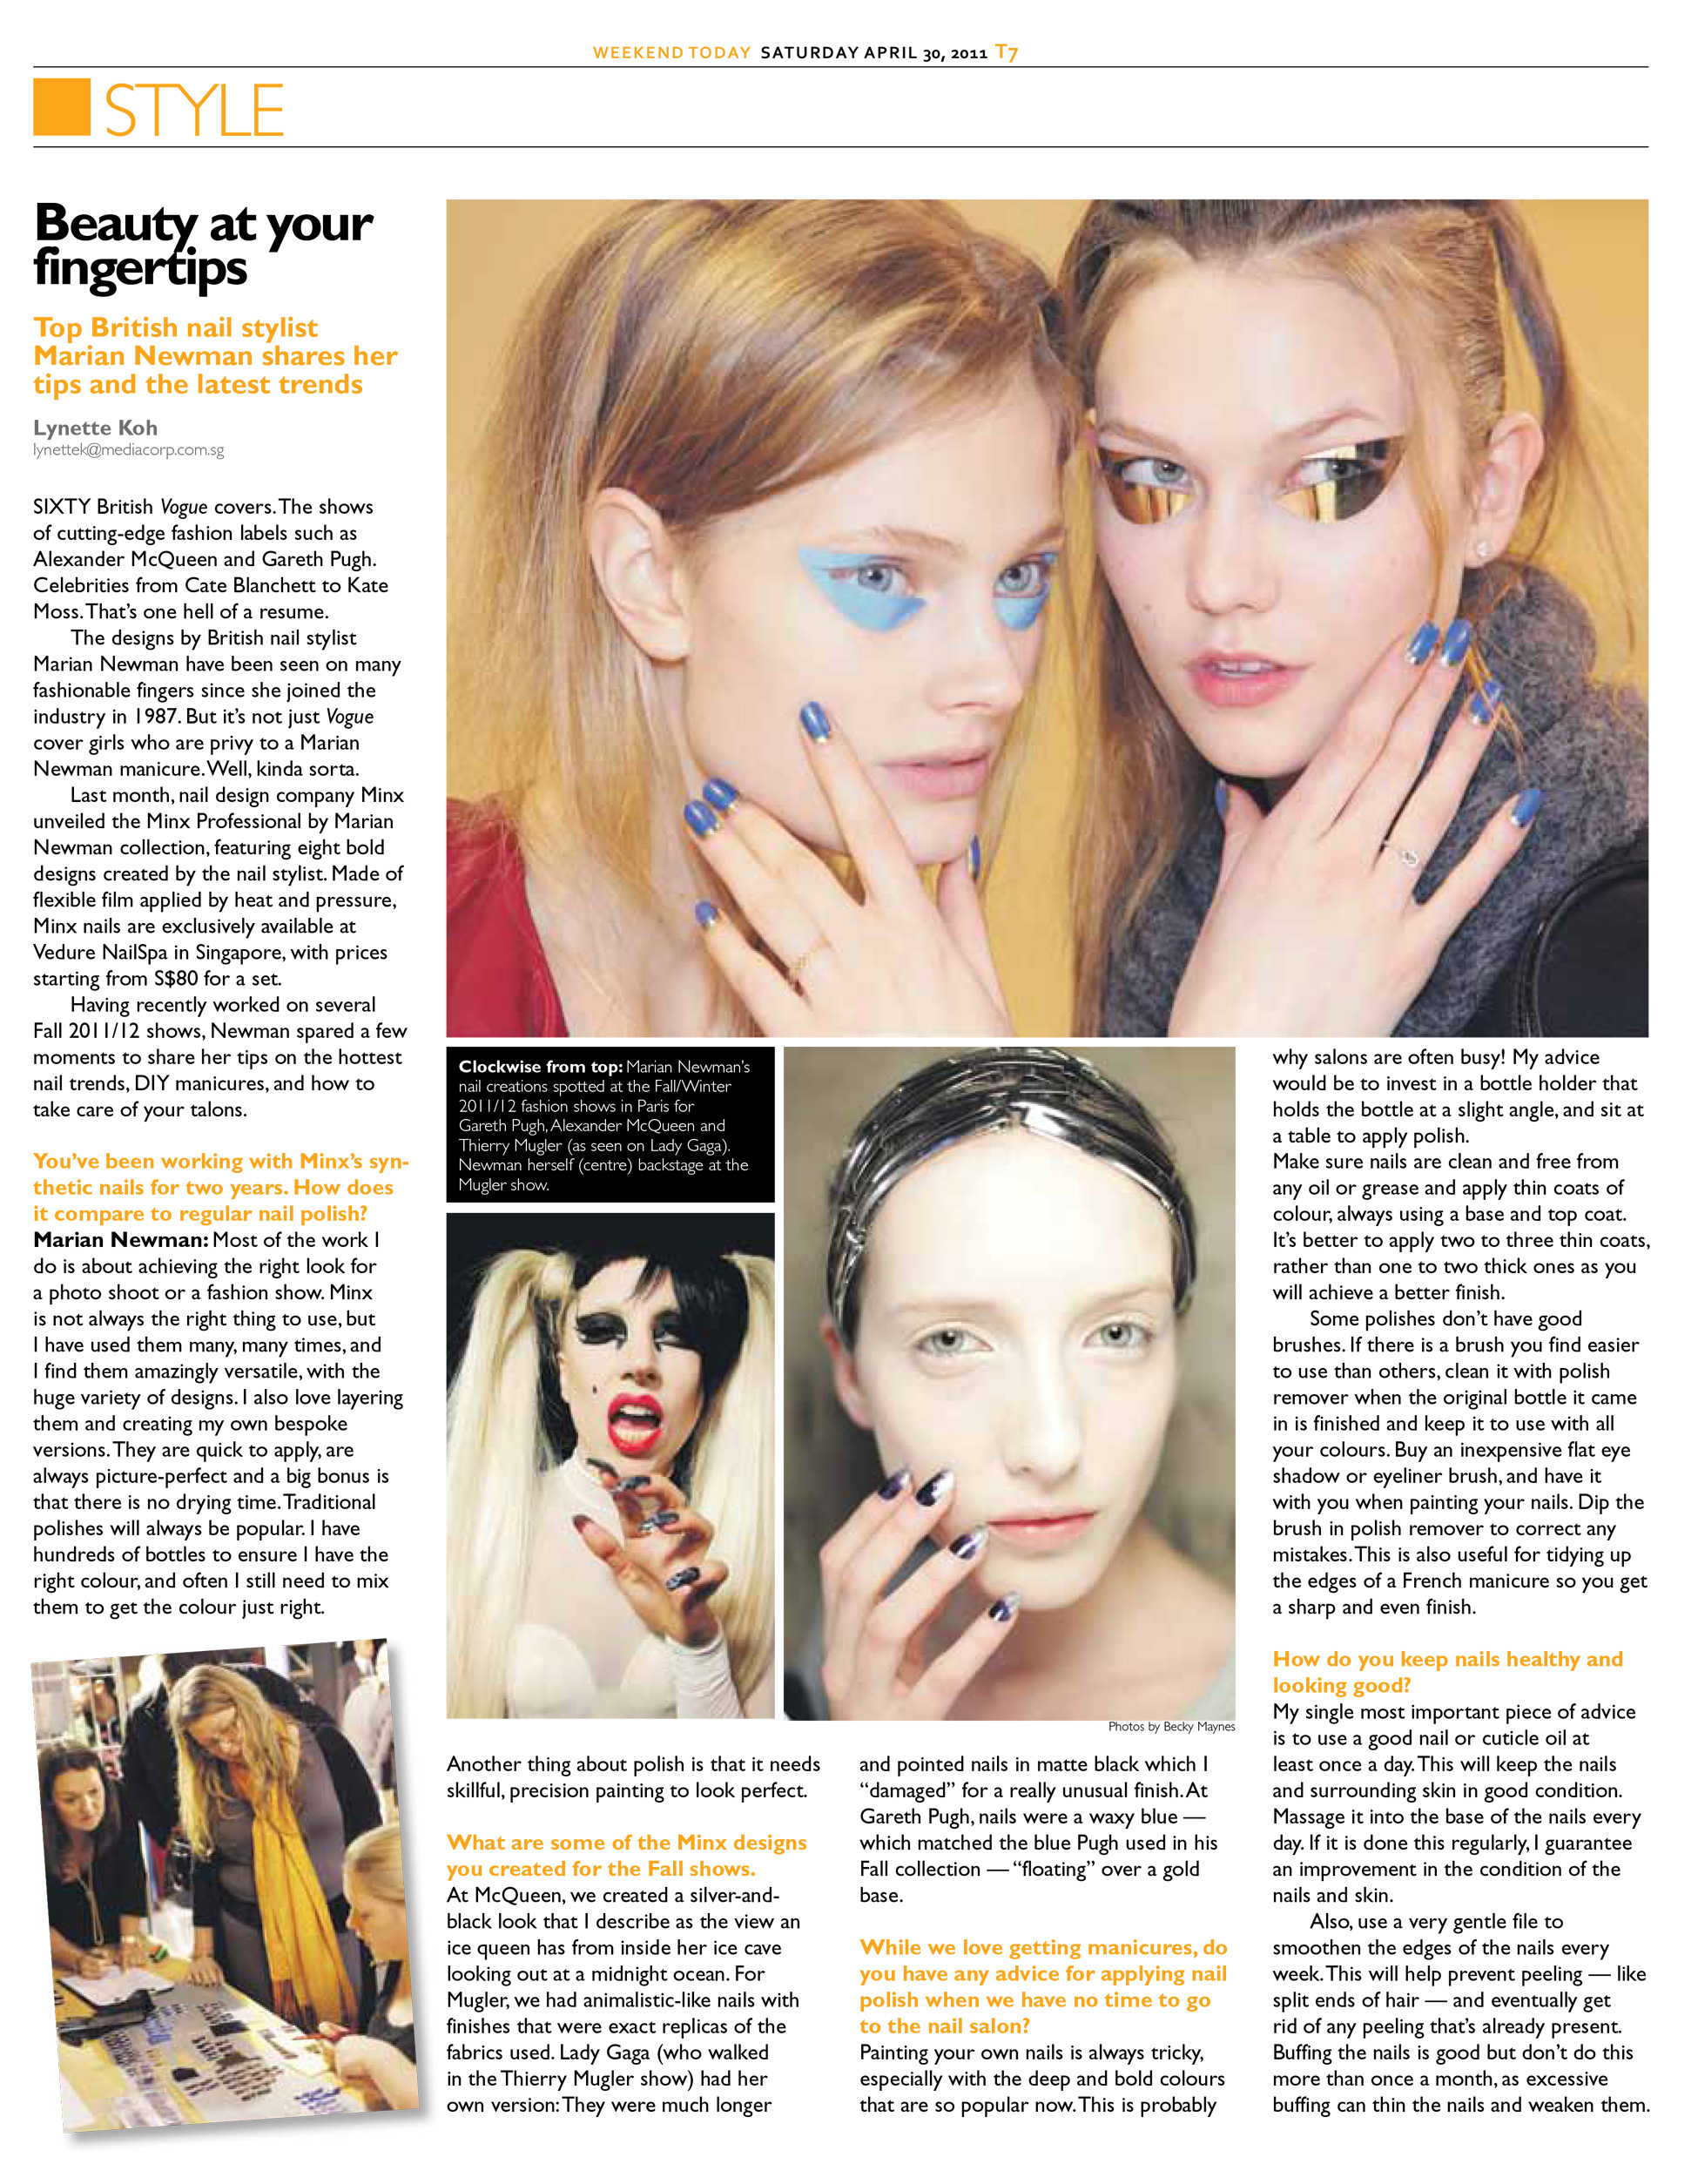 Beauty/Facial/Nail Article